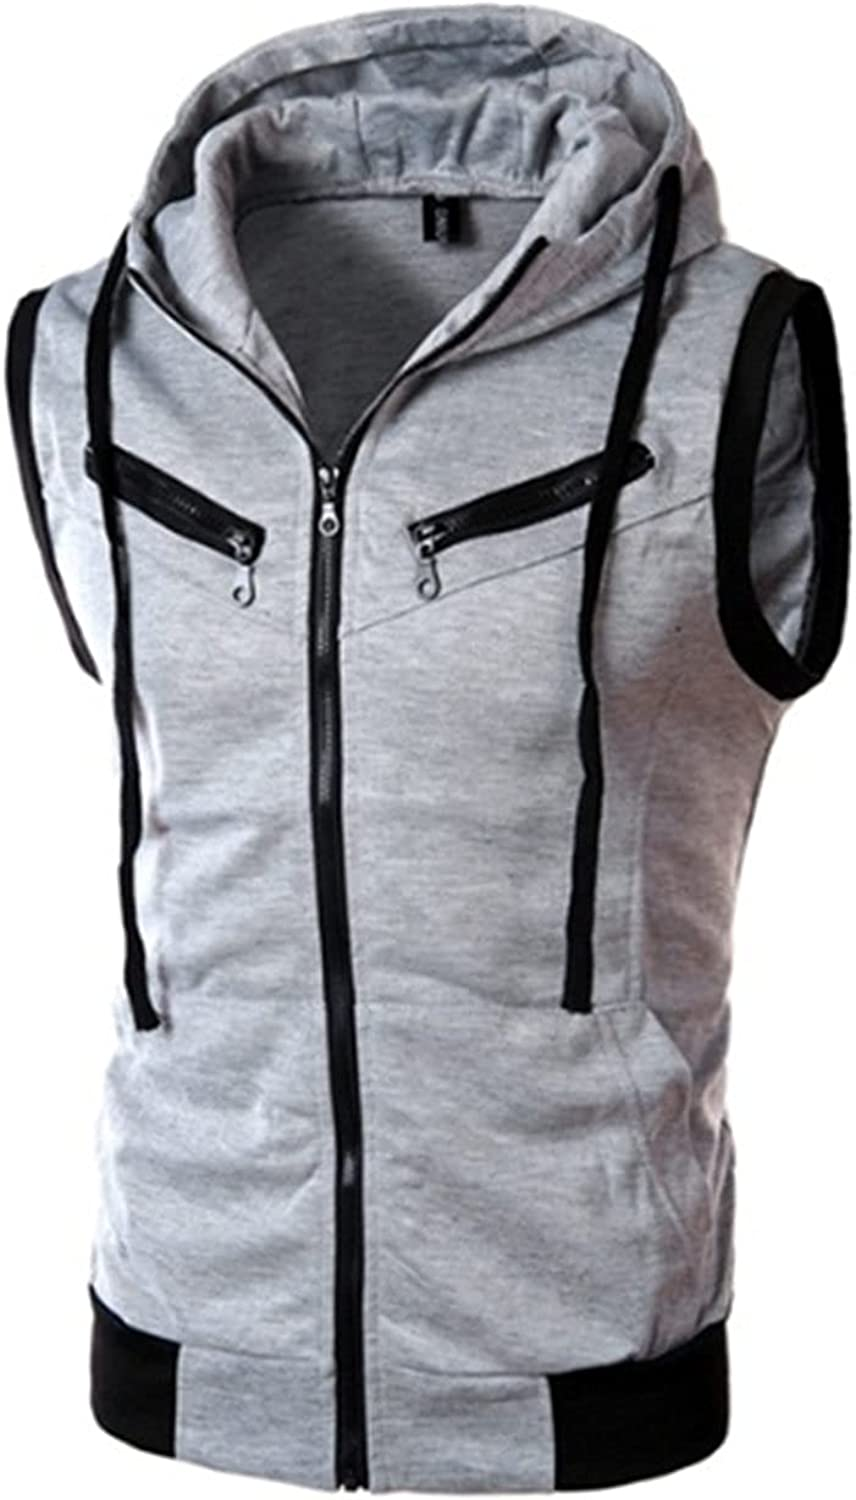 Men's Basic Solid Cotton Based Zipper Vest Hoodie Slim Fit Sleeveless Lightweight Drawstring Gilet Casual Jacket with Pockets